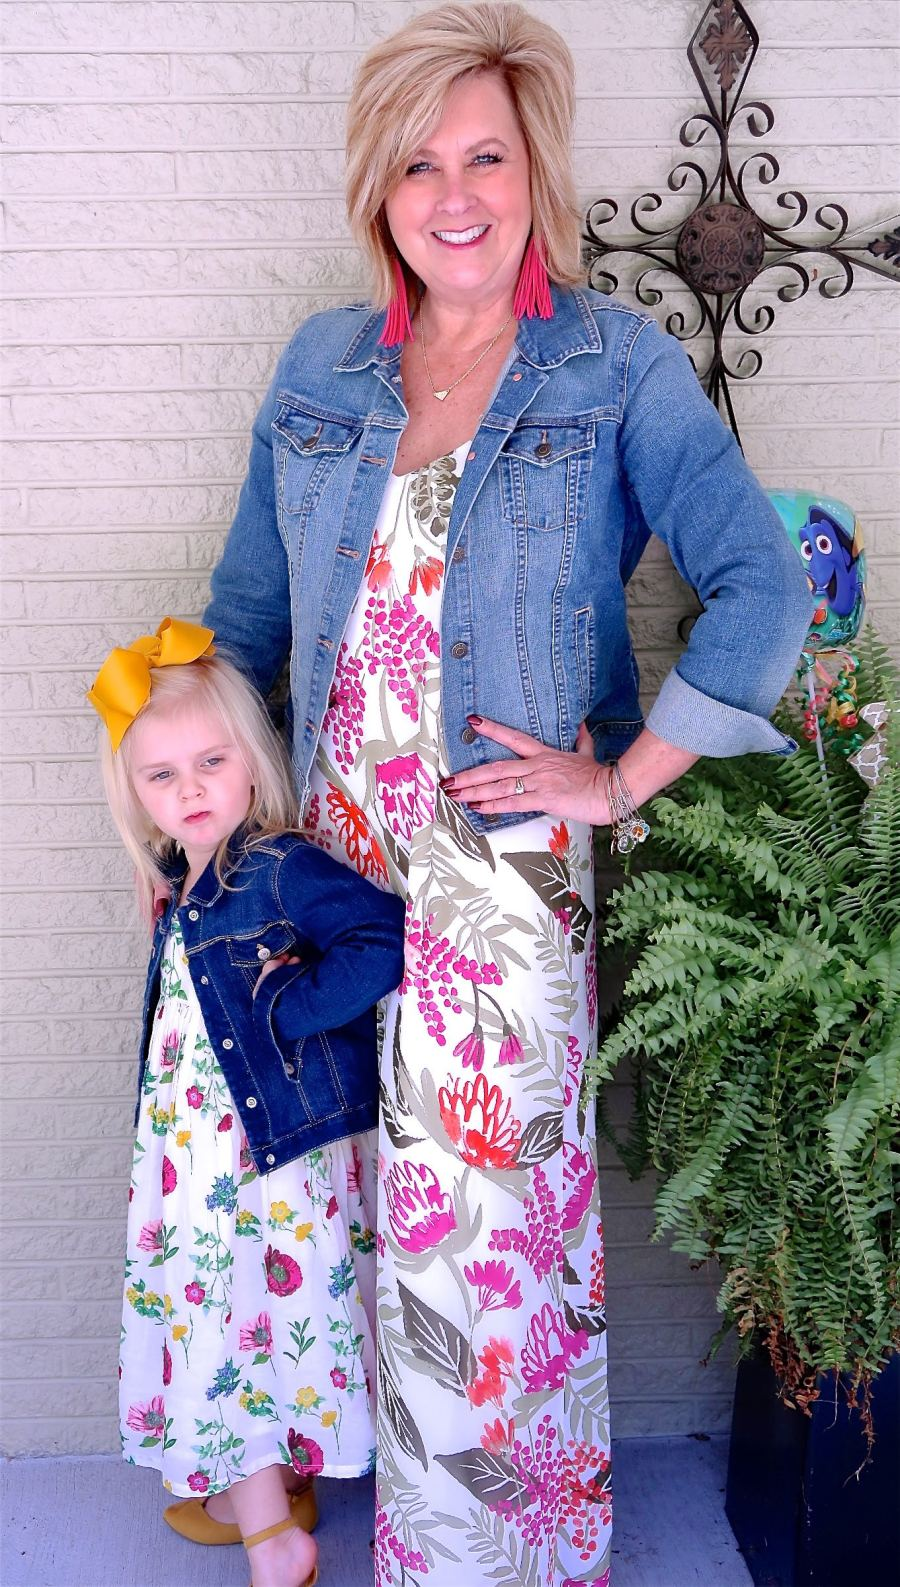 50 IS NOT OLD | DENIM JACKET AND A MAXI DRESS